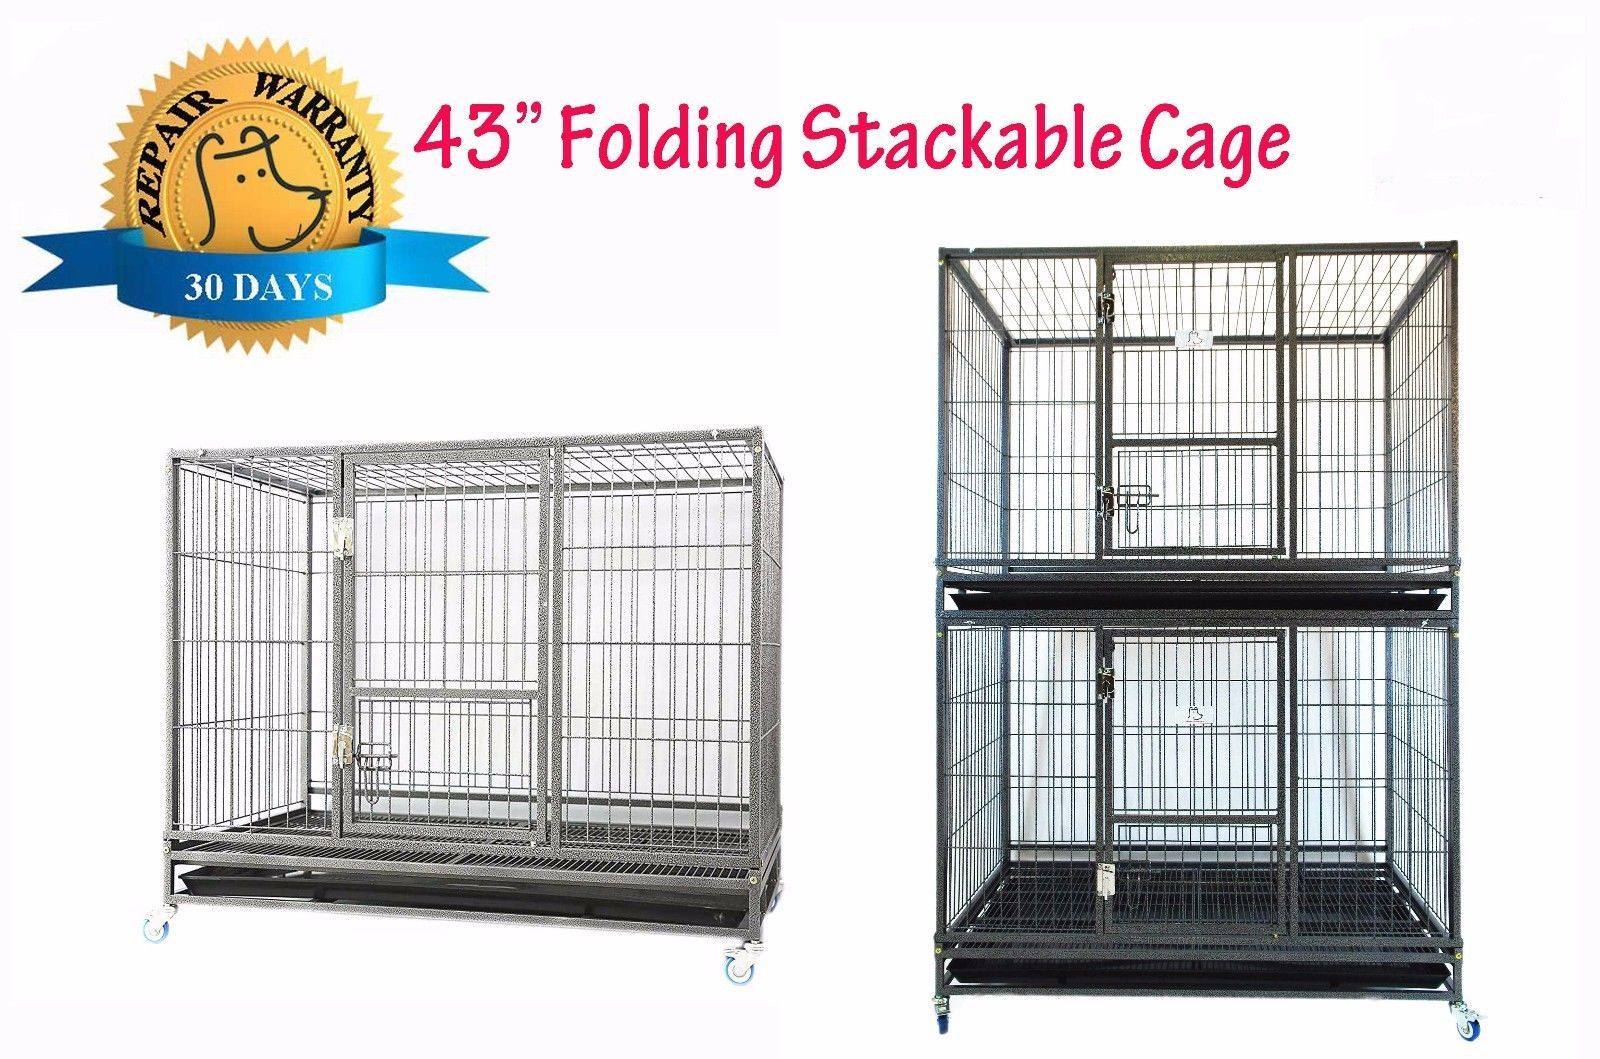 Cages and Crates 121851 New Homey Pet 43 Stackable Heavy